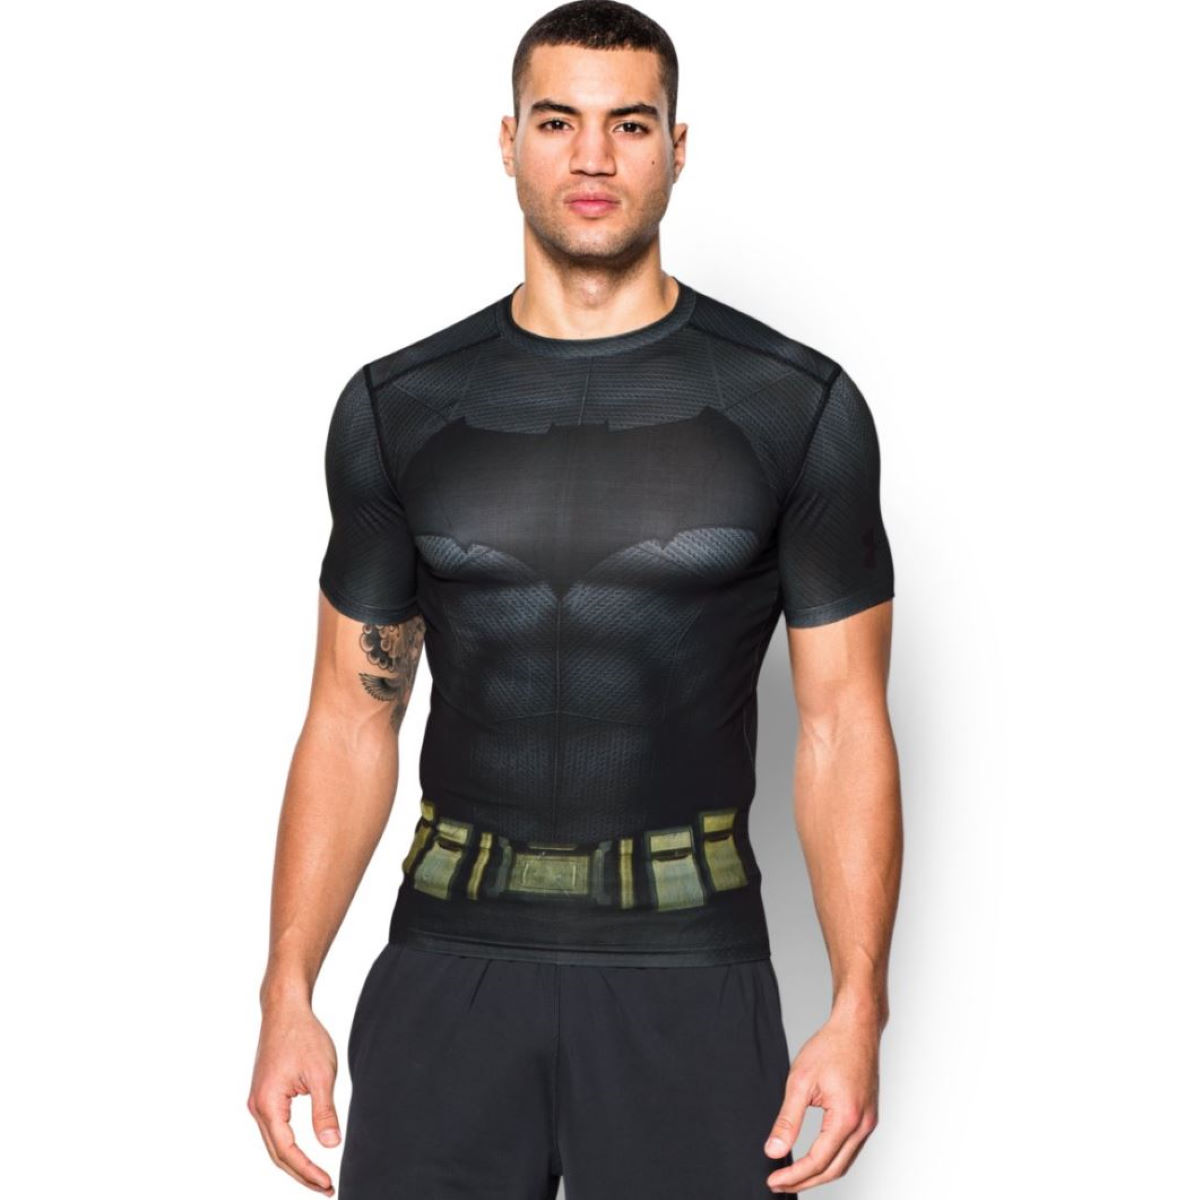 Camiseta de compresión Under Armour Transform Yourself Batman - Prendas de compresión